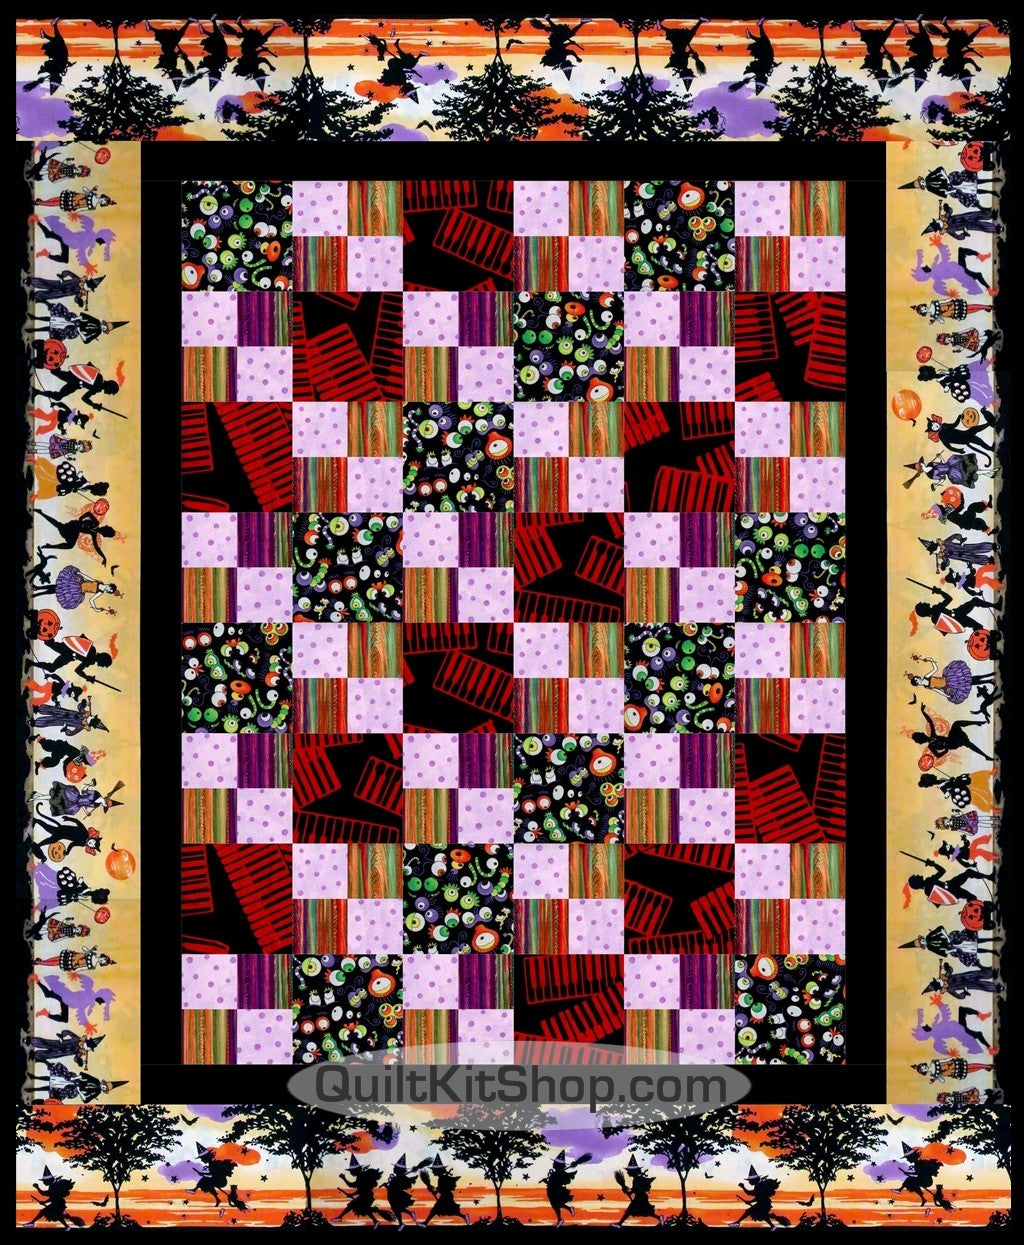 Wild Thing Eyes Double 4 Patch PreCut Wall Quilt Kit